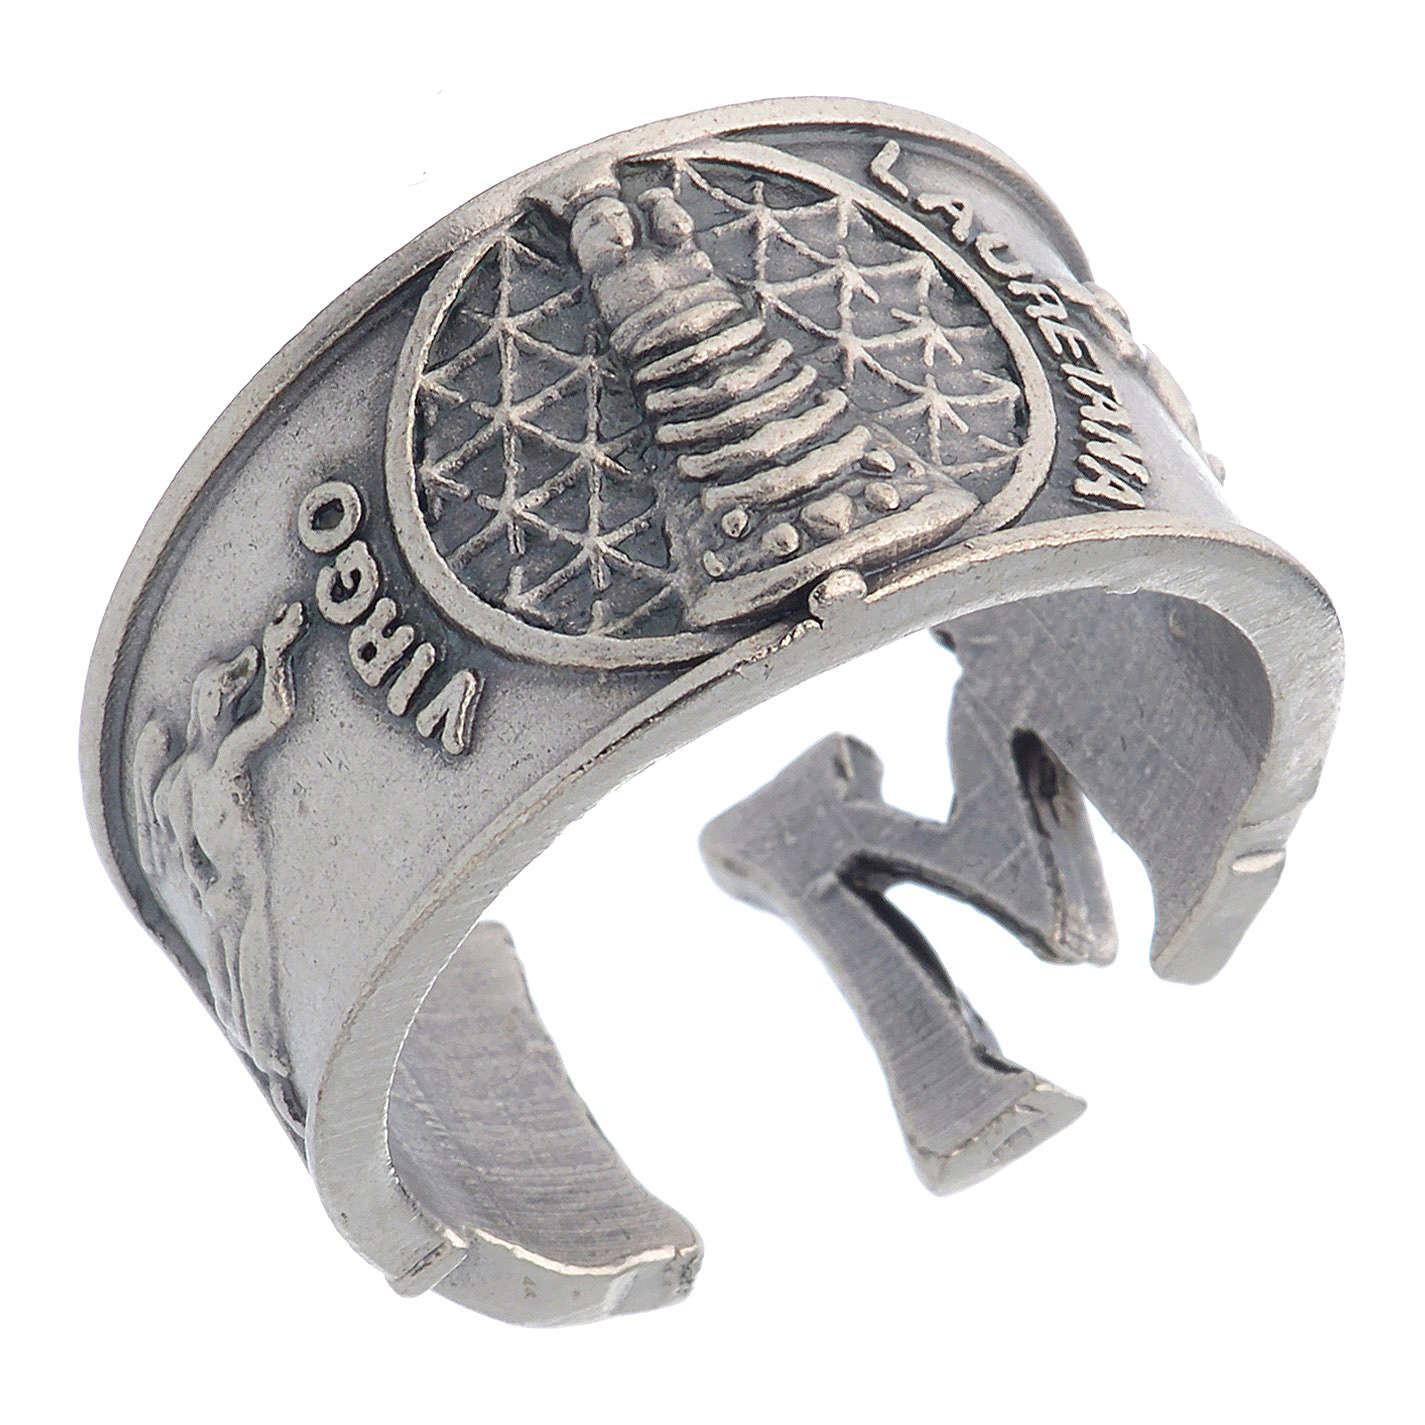 Zamak ring with Our Lady of Loreto image 3